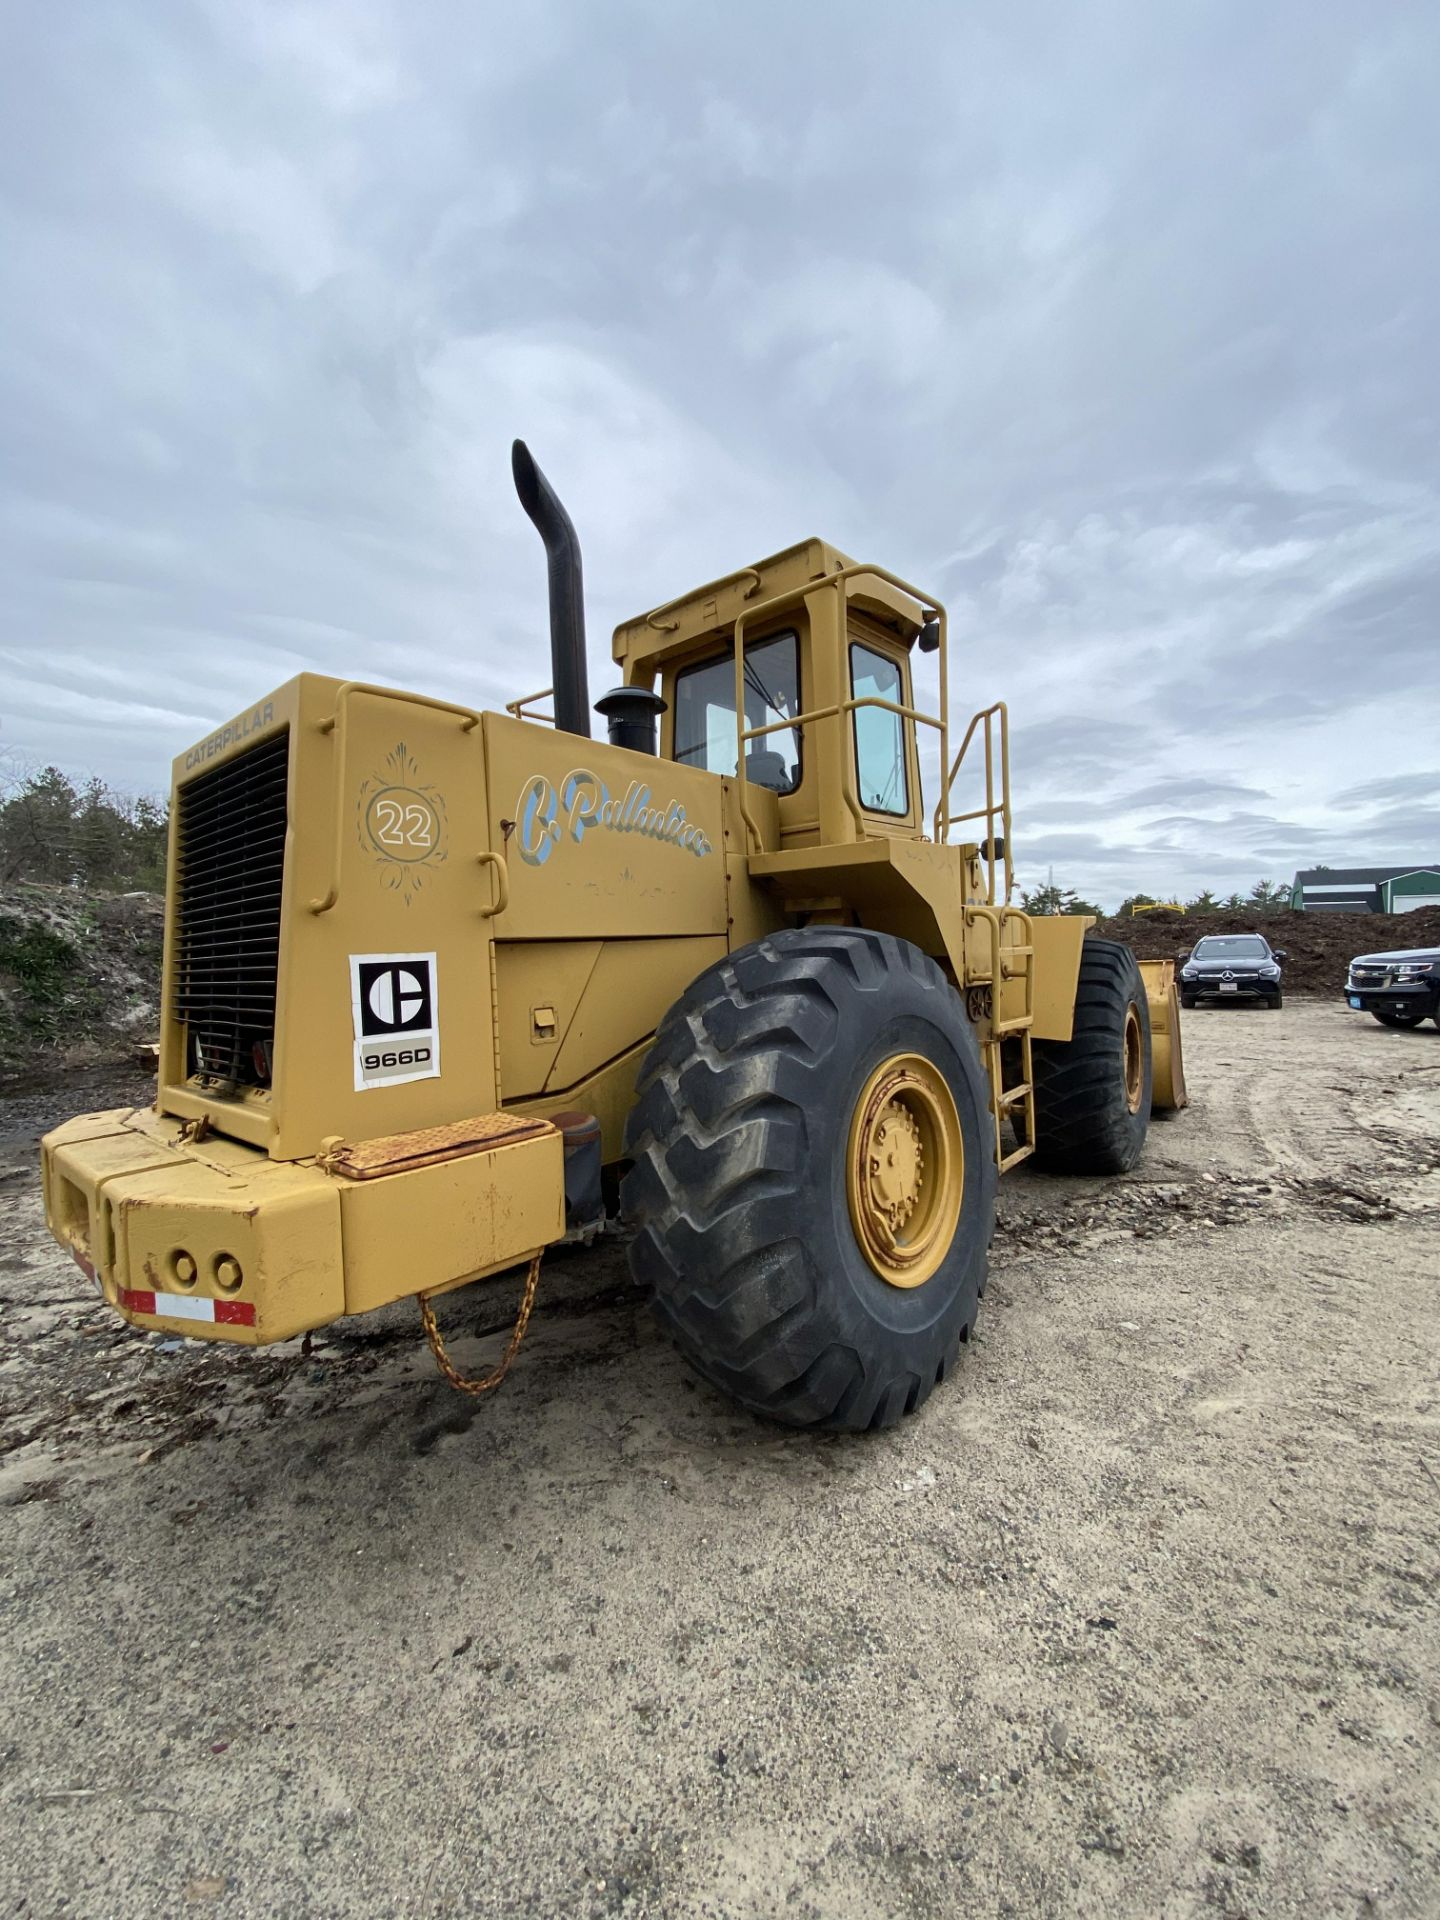 1980 Caterpillar 966D Wheel Loader s/n 99Y02108, Meter Reads 4,664 Hours, Have Title - Image 11 of 23